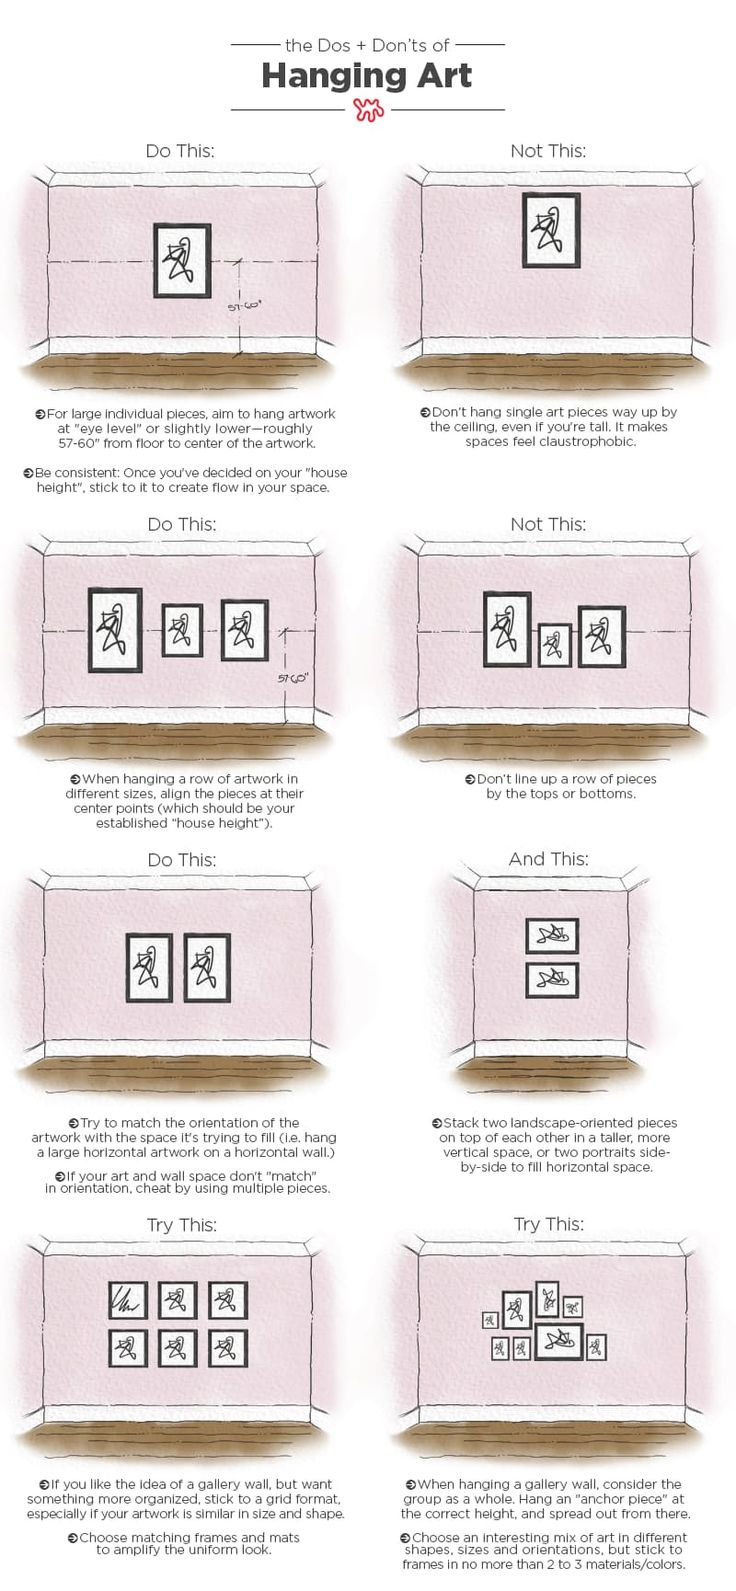 How To Hang Art 469 best home: rooms, walls surfaces images on pinterest